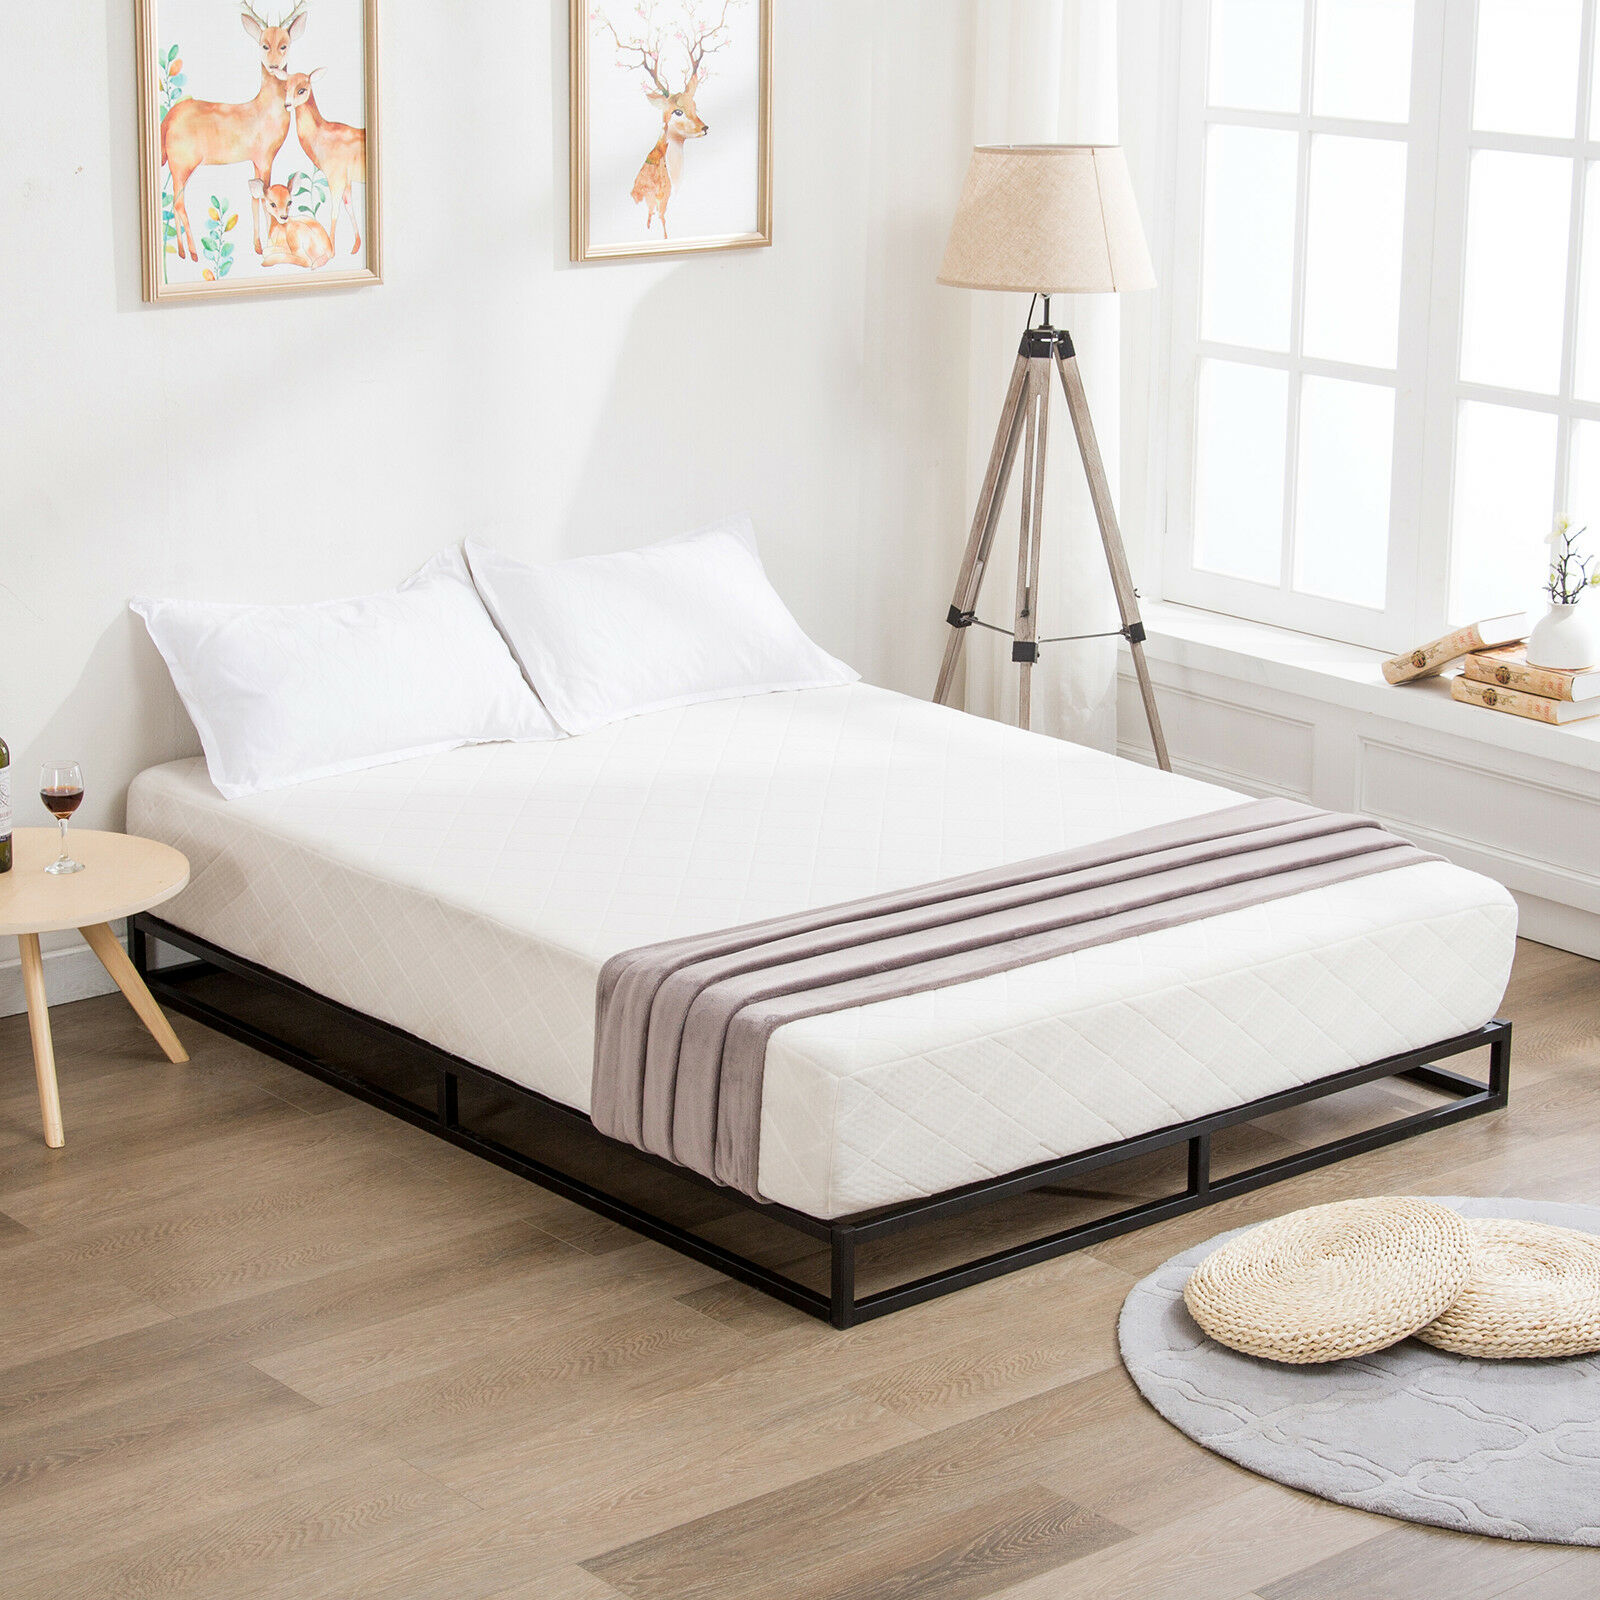 Modern Queen Size Metal Platform Bed Frame Wood Slats Mattress Foundation